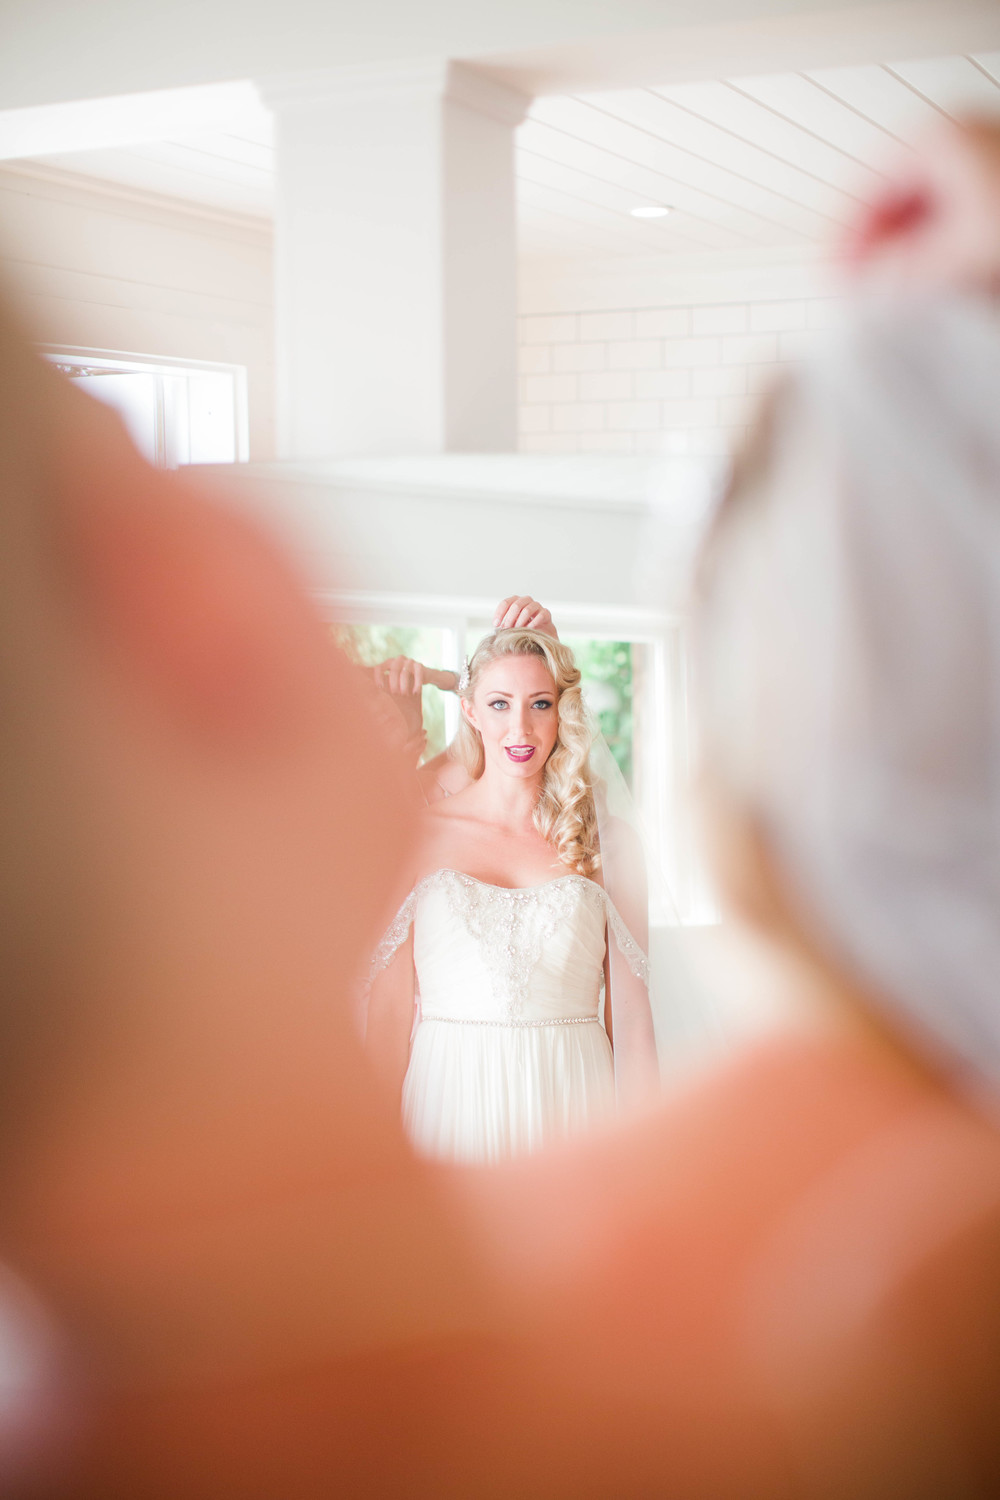 Courtney+Matt_Bellingham+Wedding_Seattle+Wedding+Photographer82.jpg